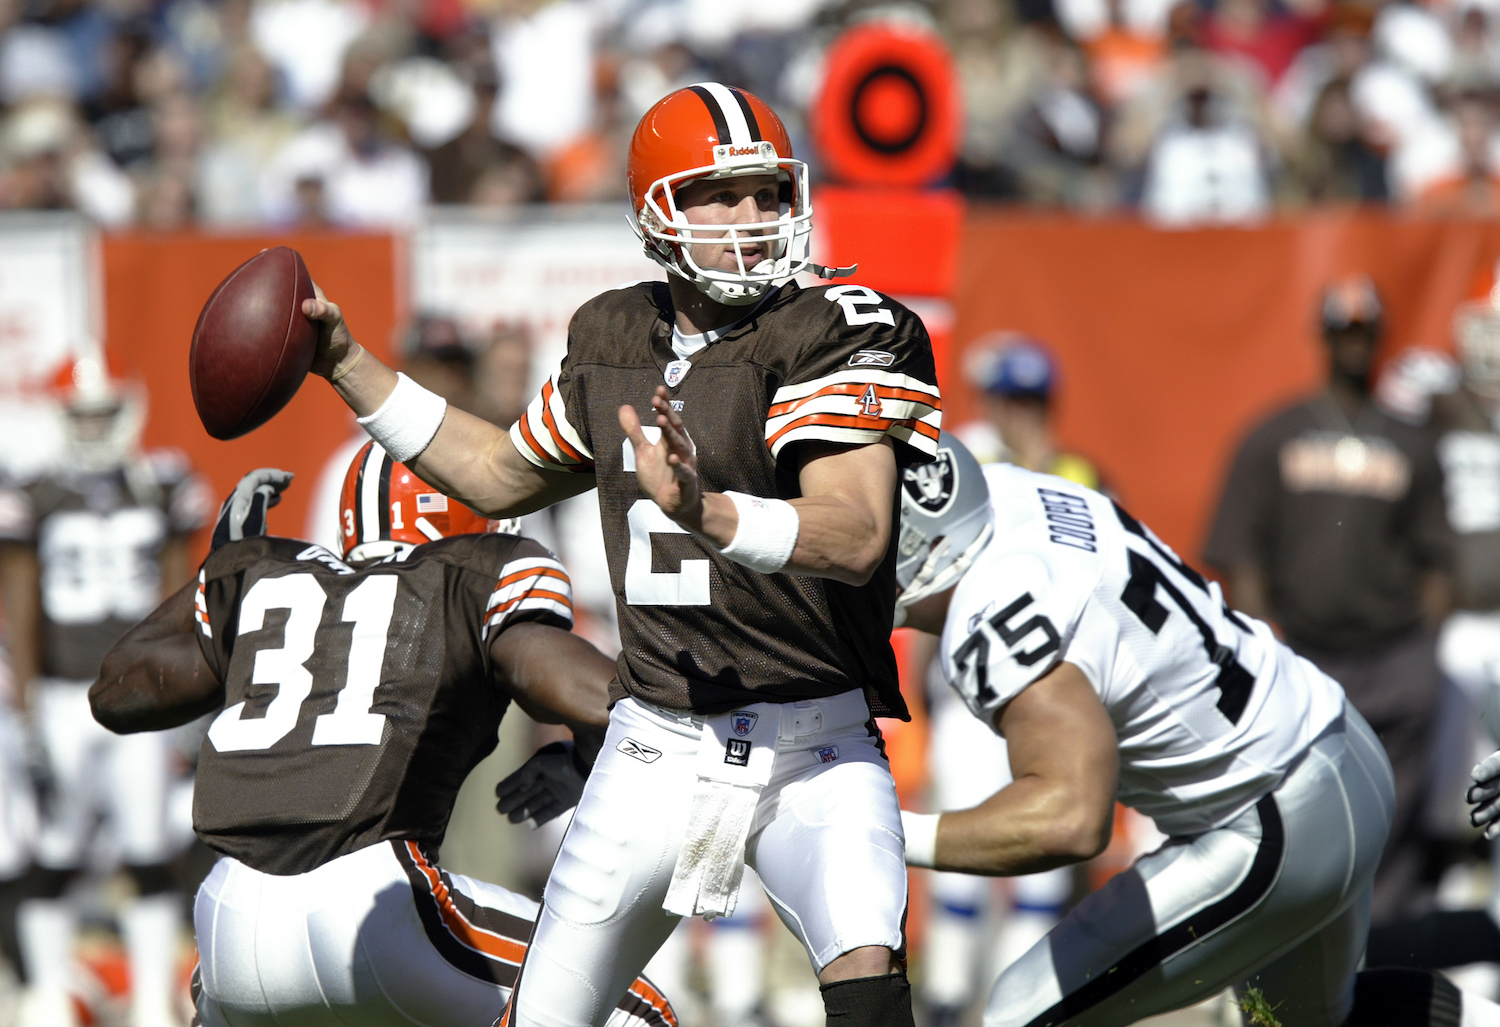 Quarterback Tim Couch of the Cleveland Browns